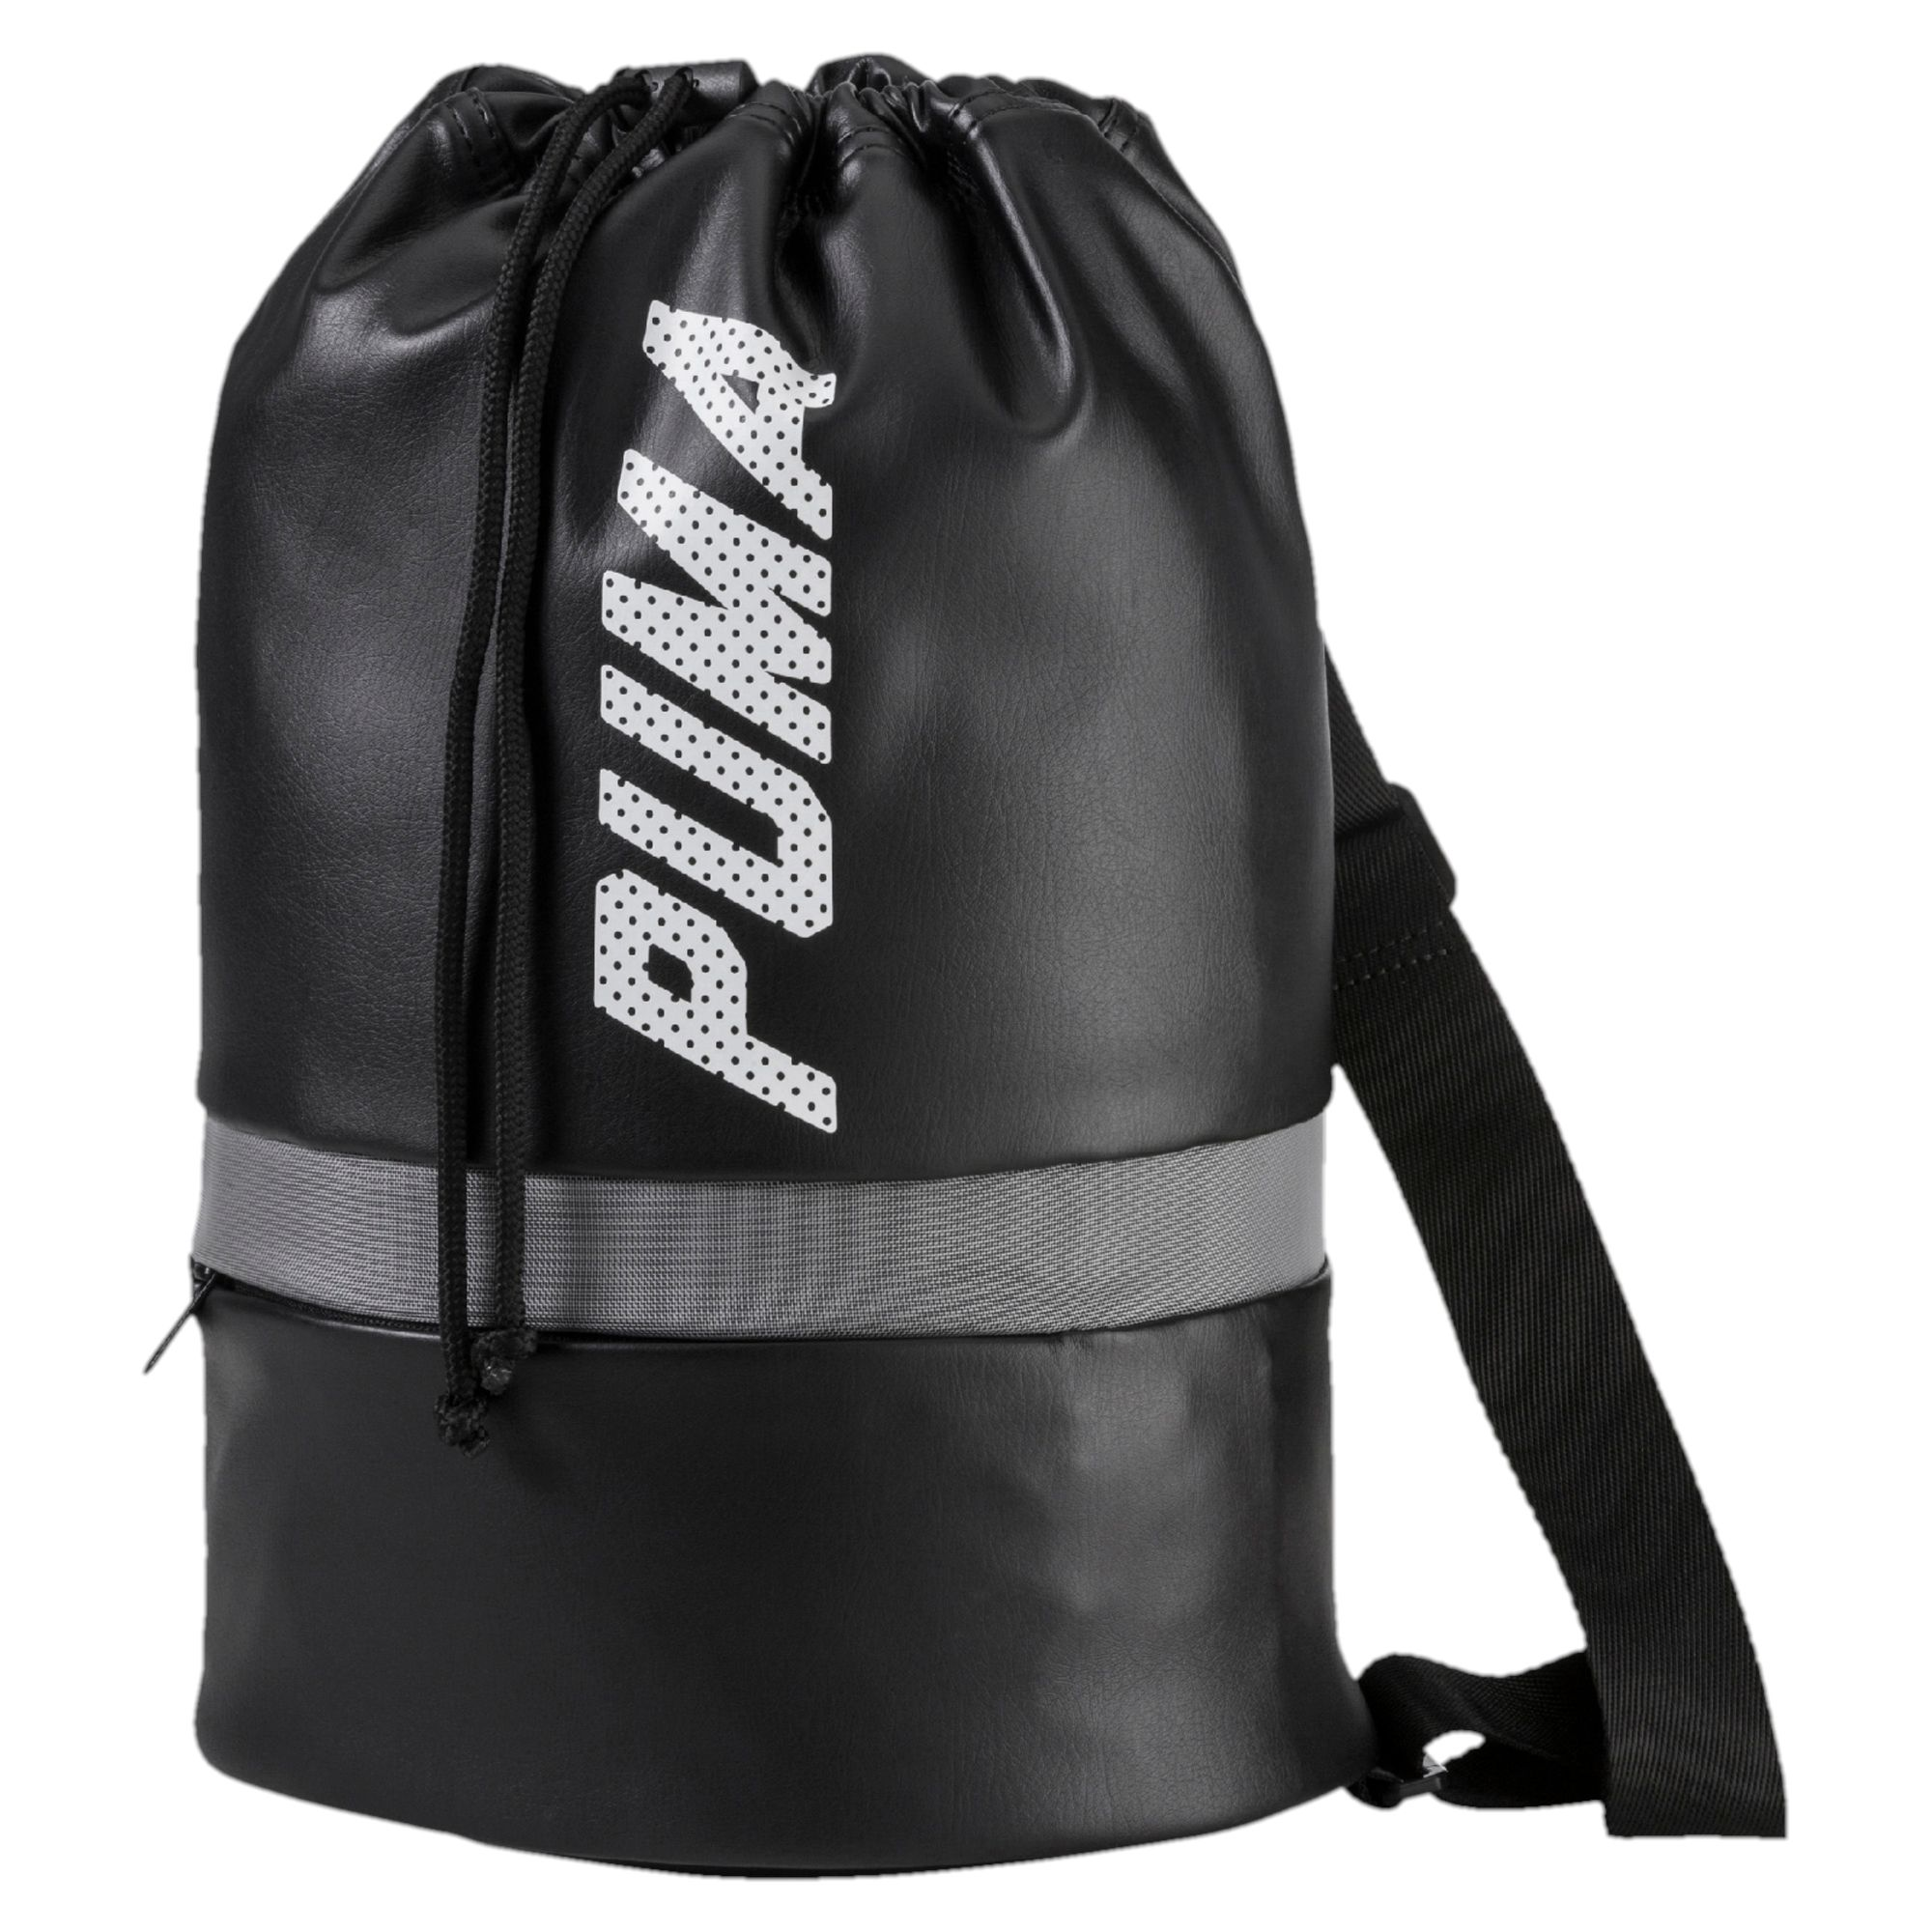 Prime Bucket Bag P Puma Black-